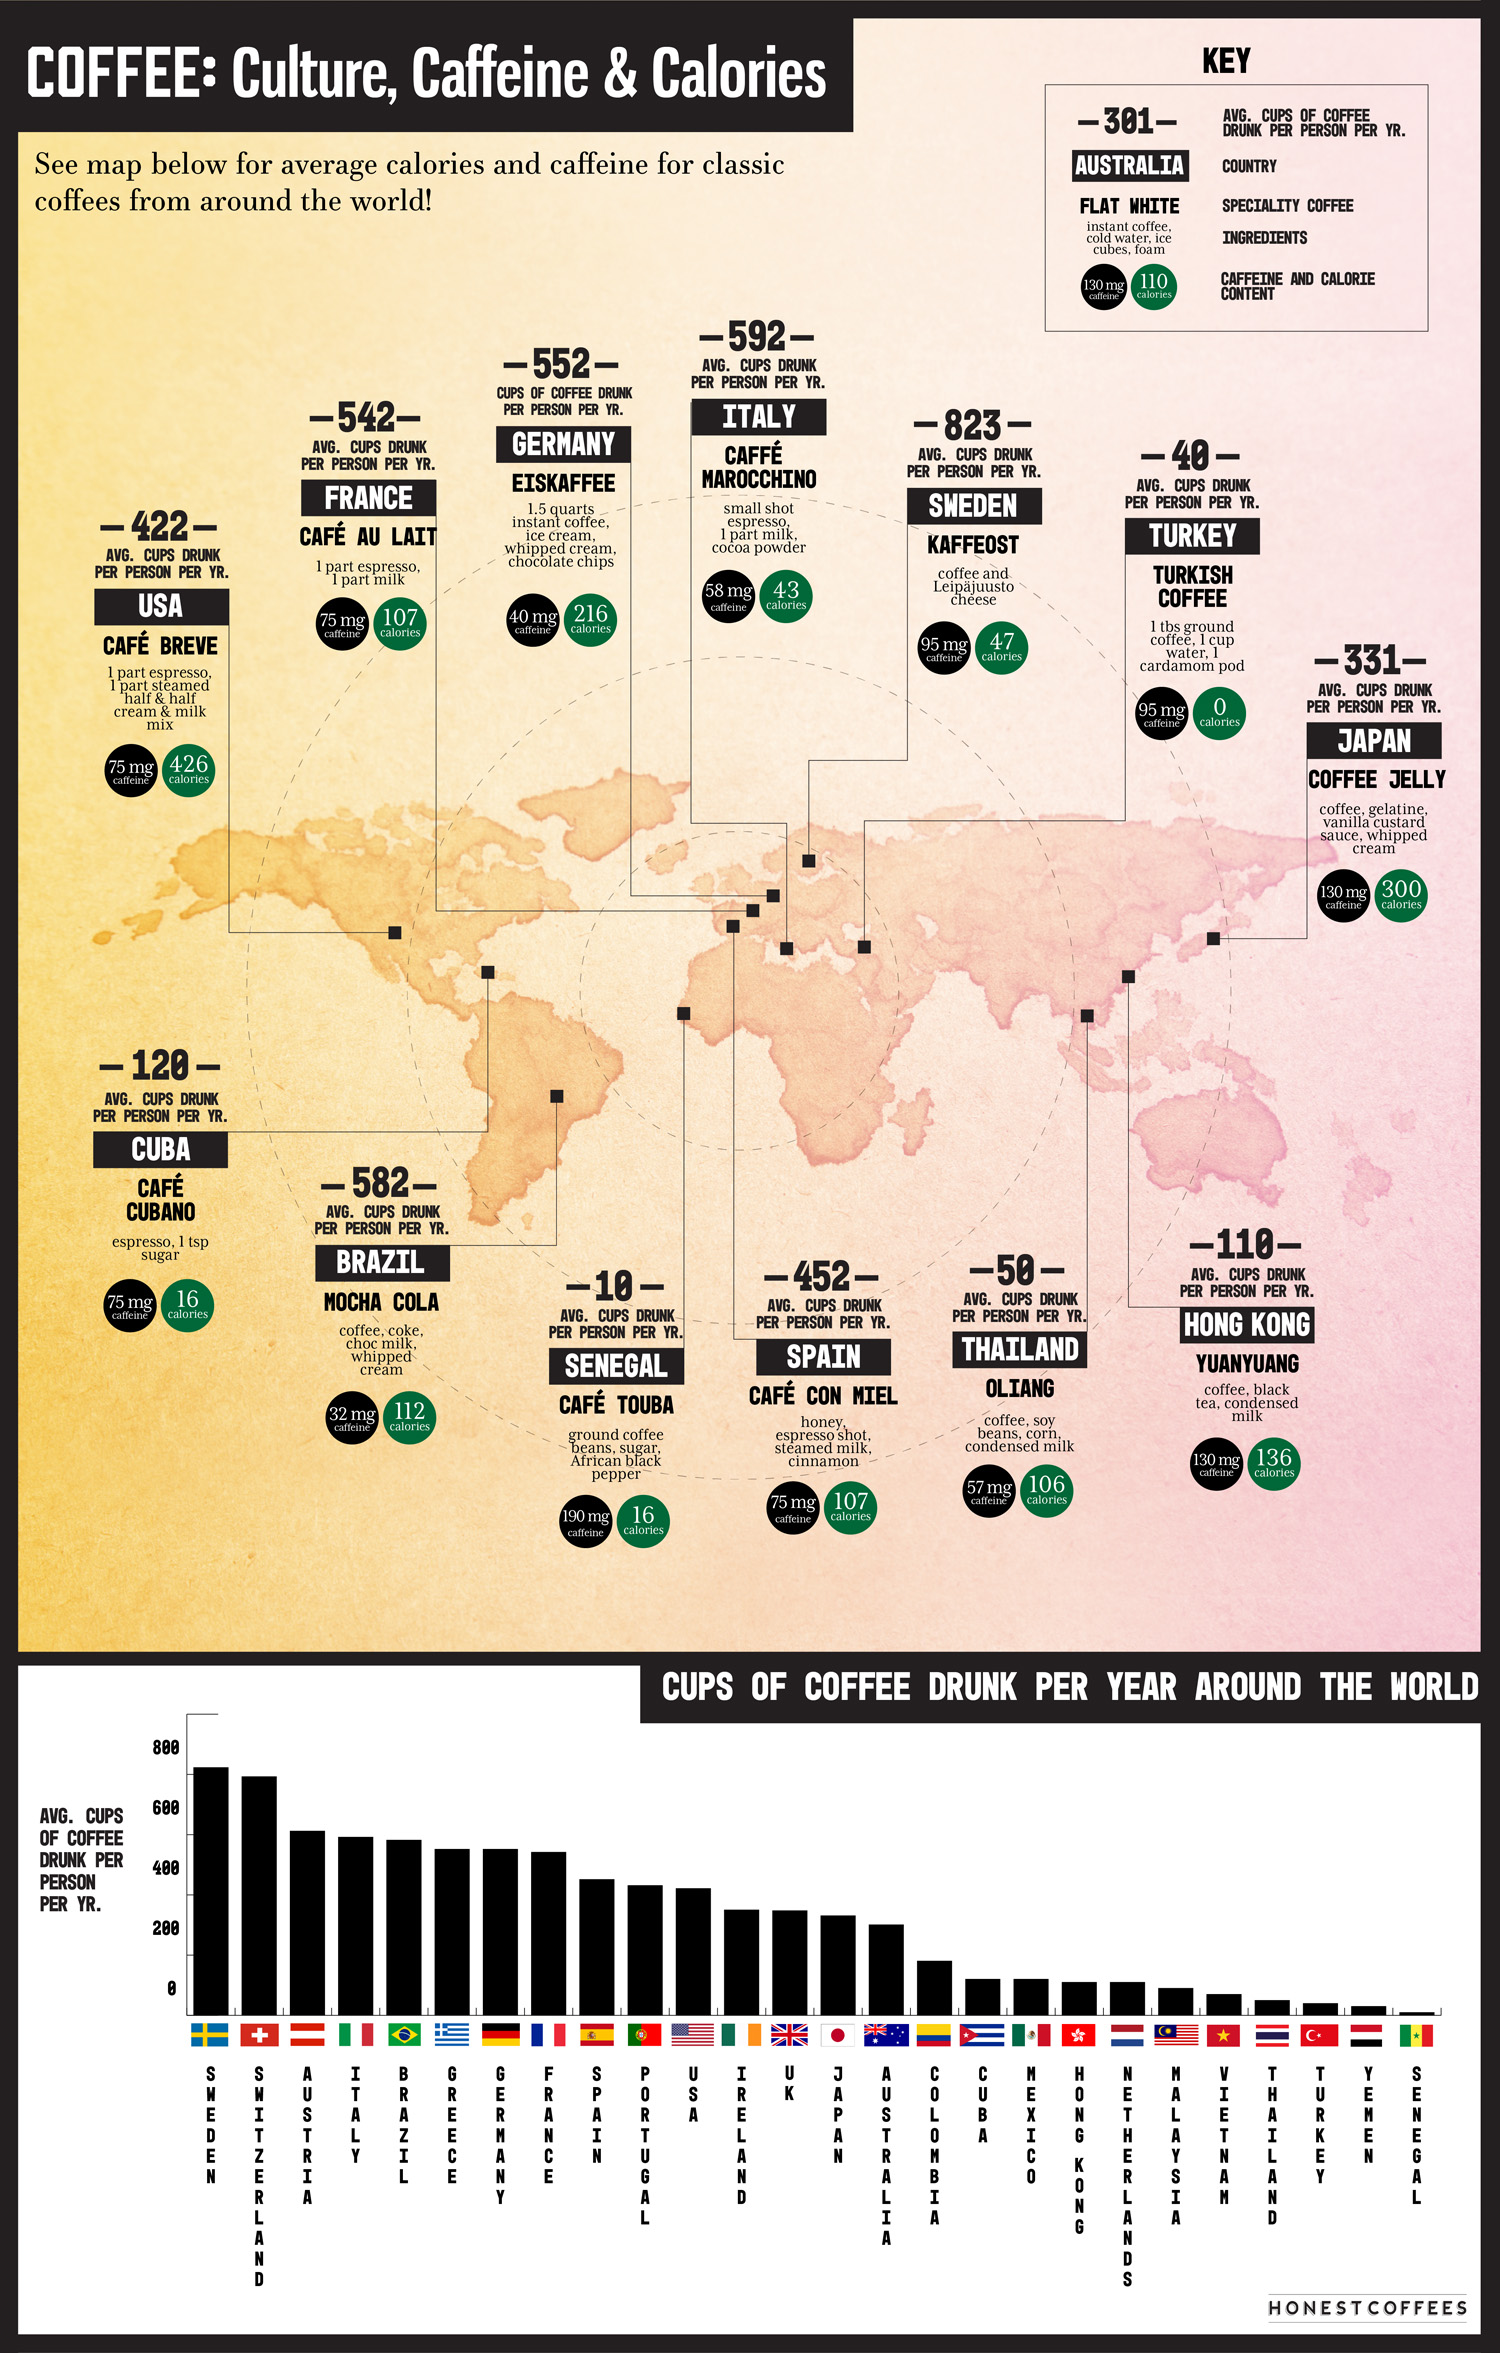 Of Coffee and Cultures: The World Described According to Coffee - Infographic